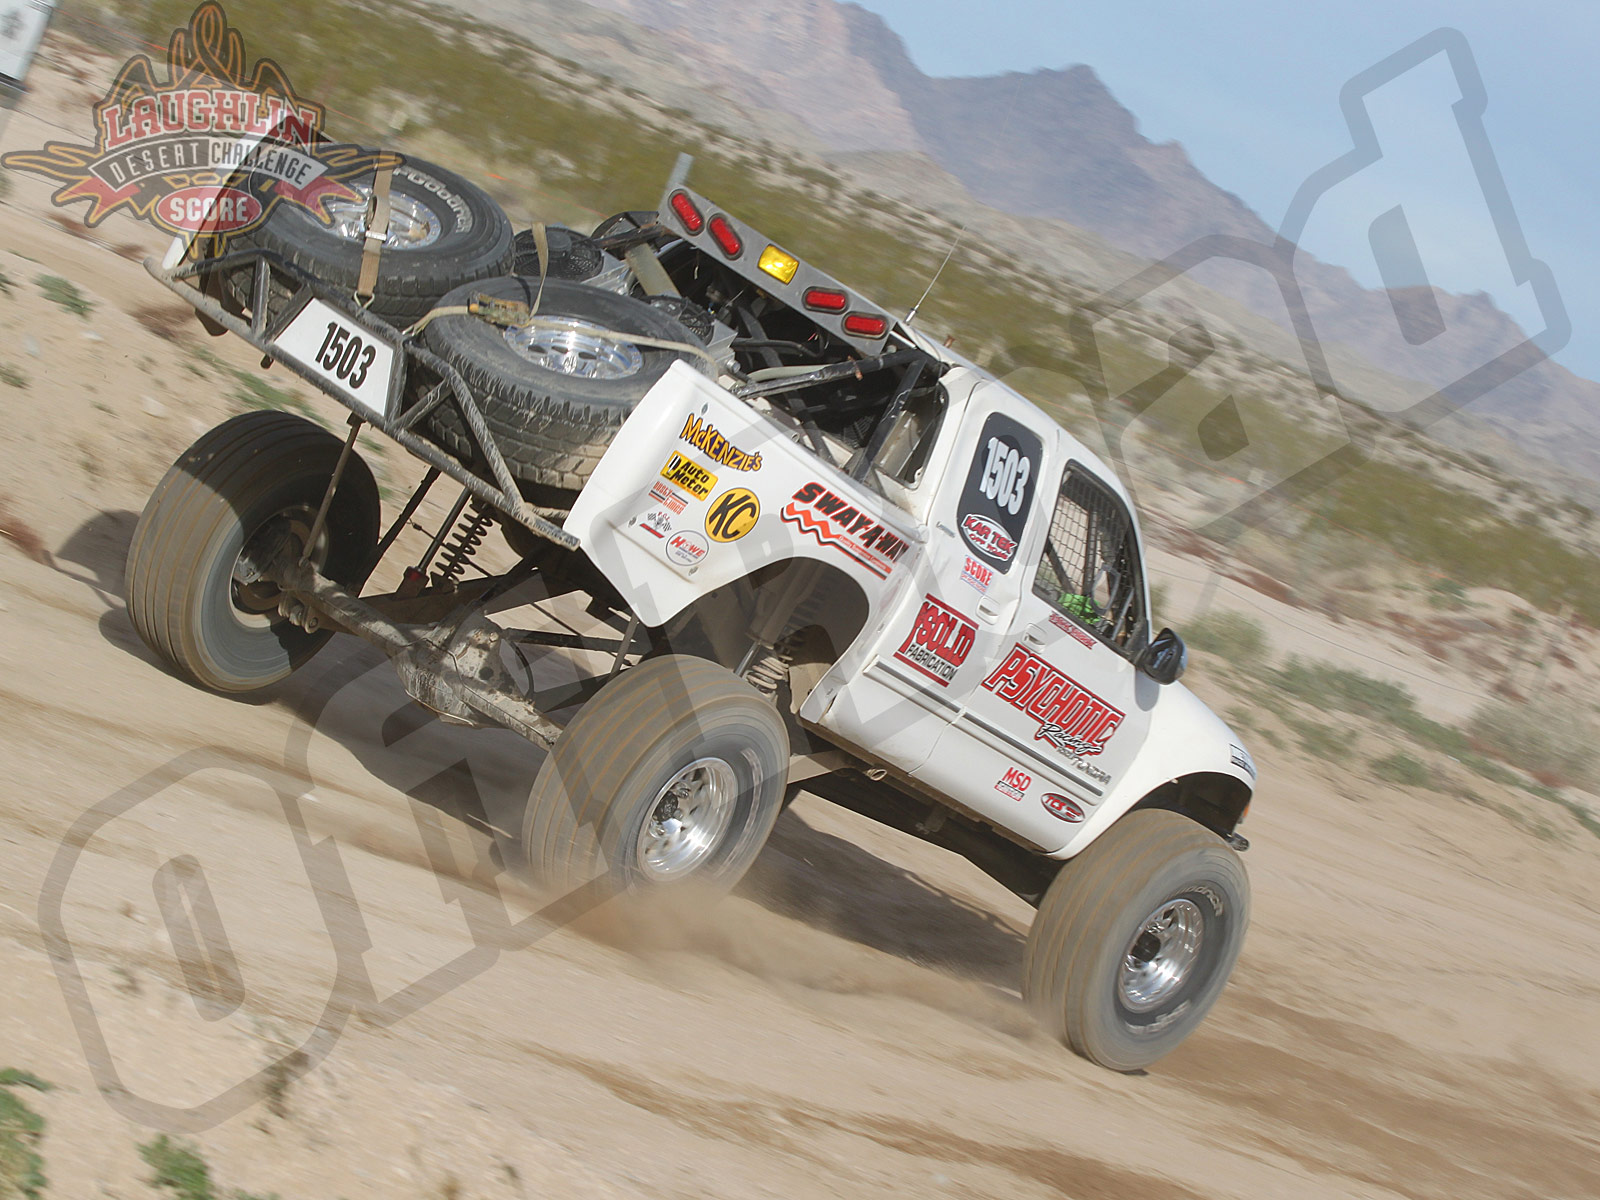 012011or 6577+2011 score laughlin desert challenge+truck classes